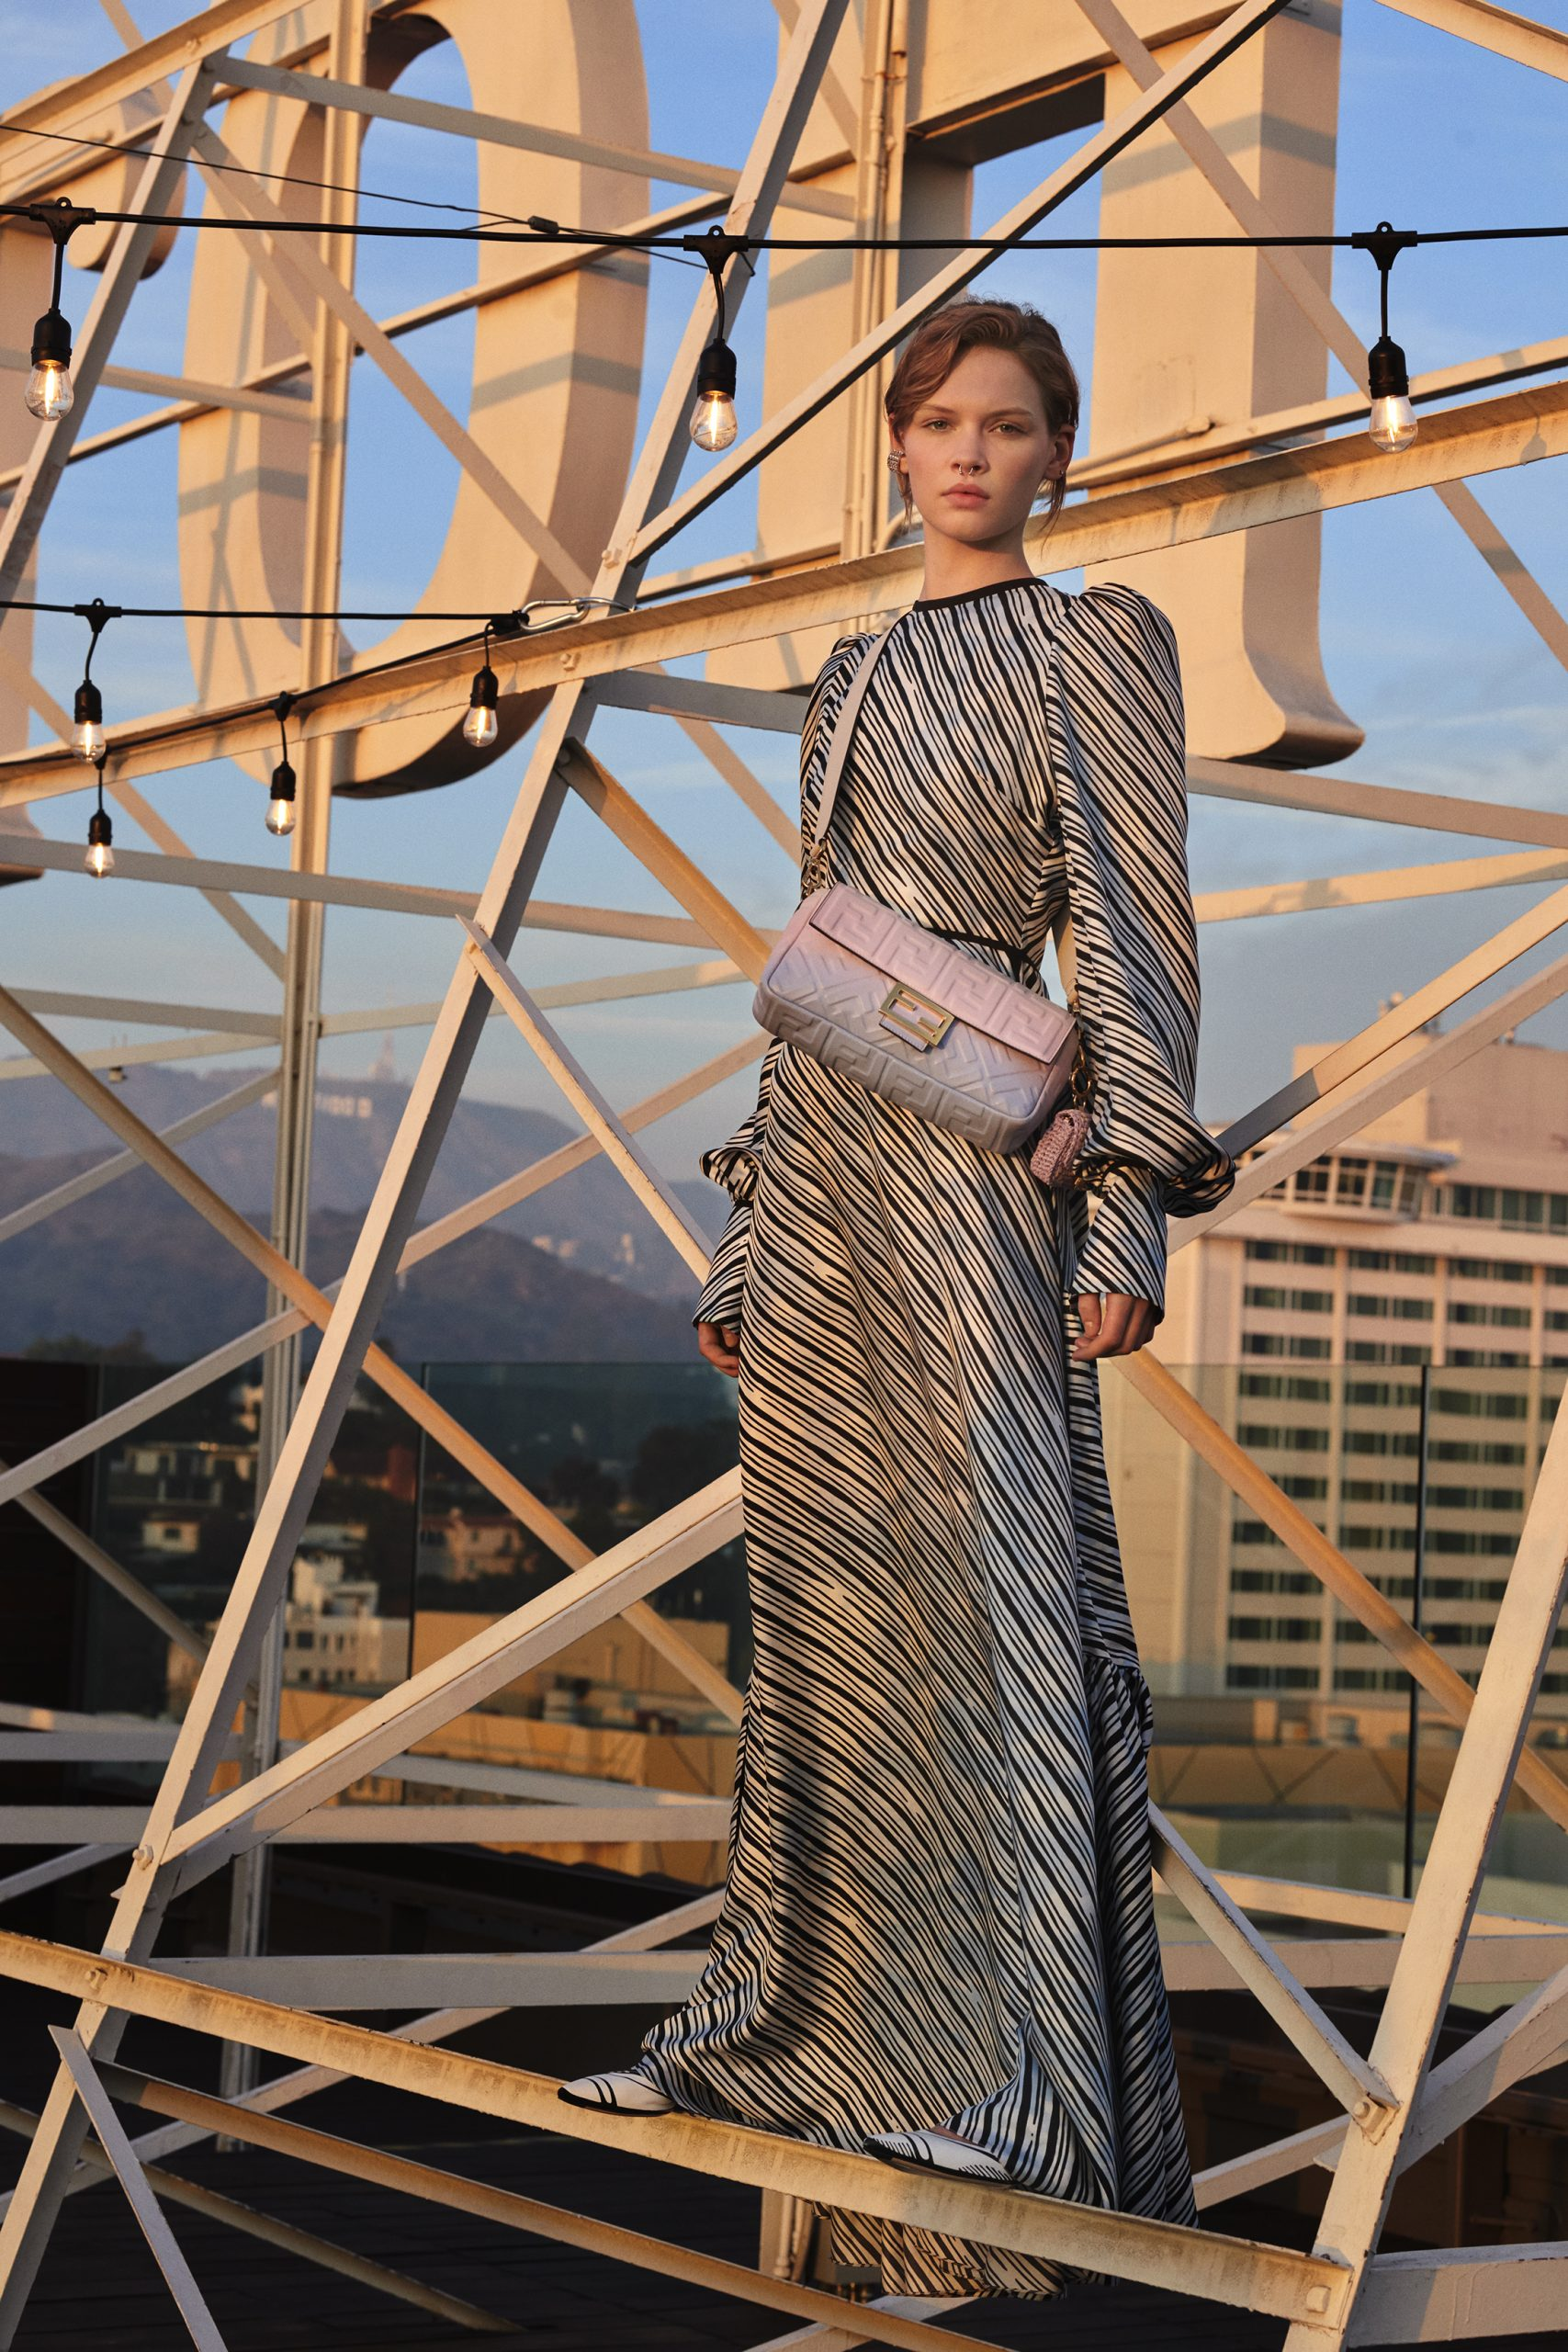 Fendi 'California Sky' Joshua Vides Pre-Fall 2020 Ad Campaign Photos